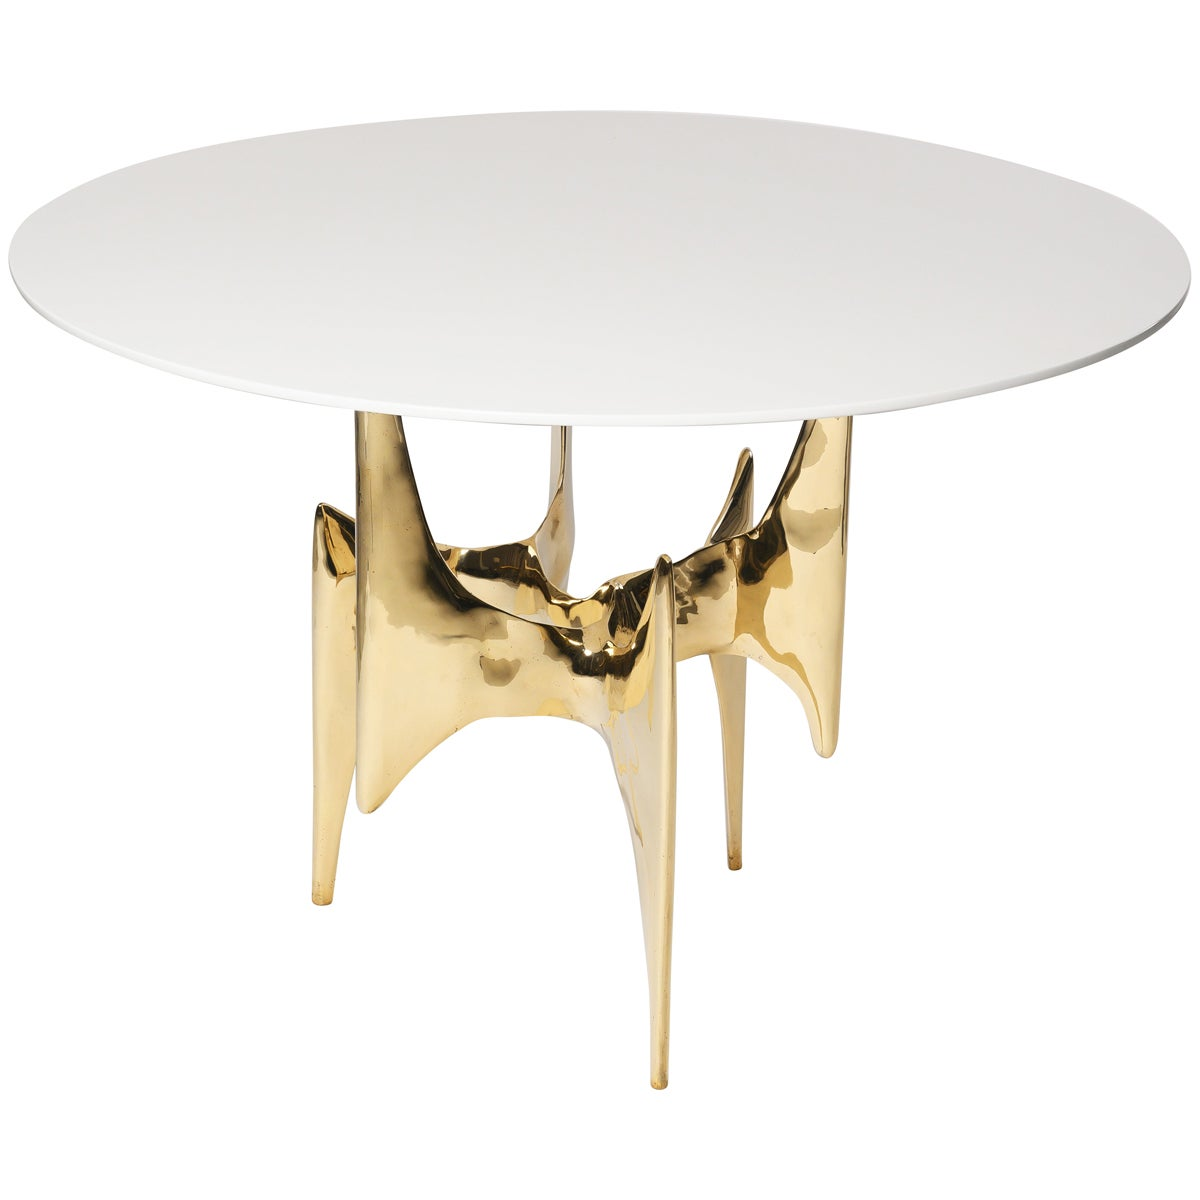 Center Table in Polished Gold Bronze with White Gloss Top by Elan Atelier